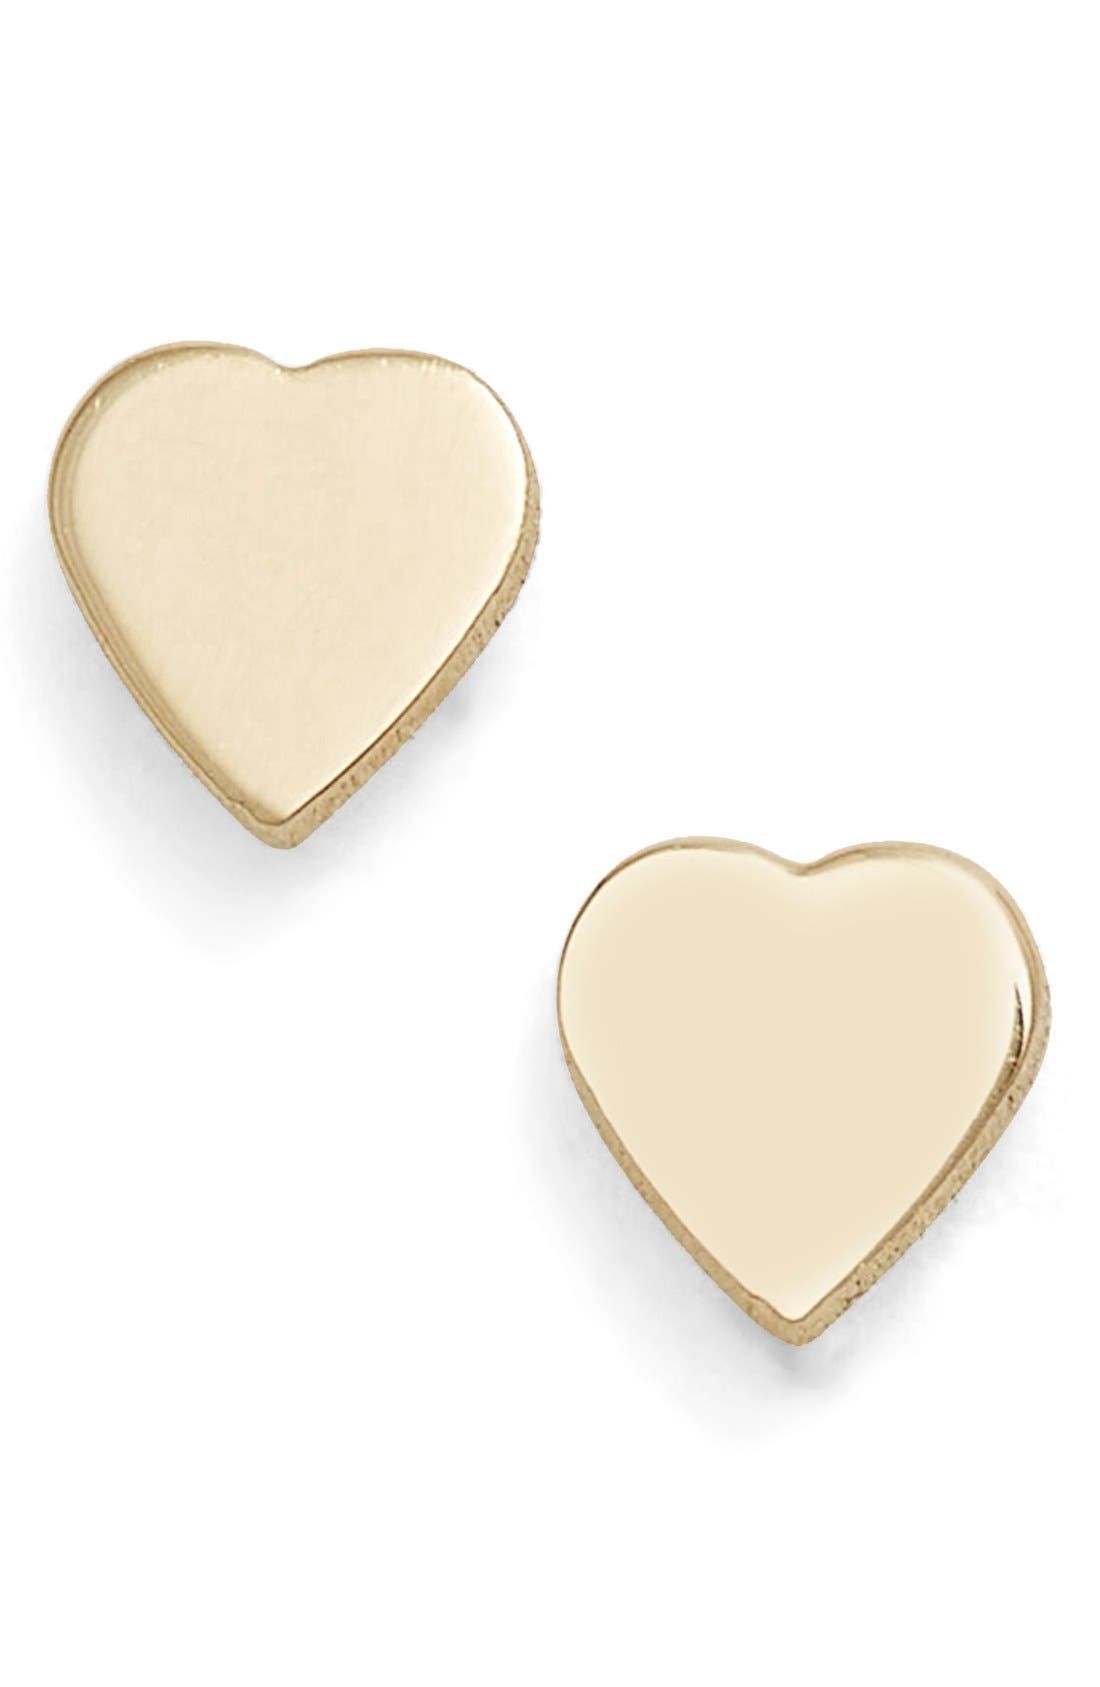 Mini Sweetheart Stud Earrings,                             Main thumbnail 1, color,                             YELLOW GOLD